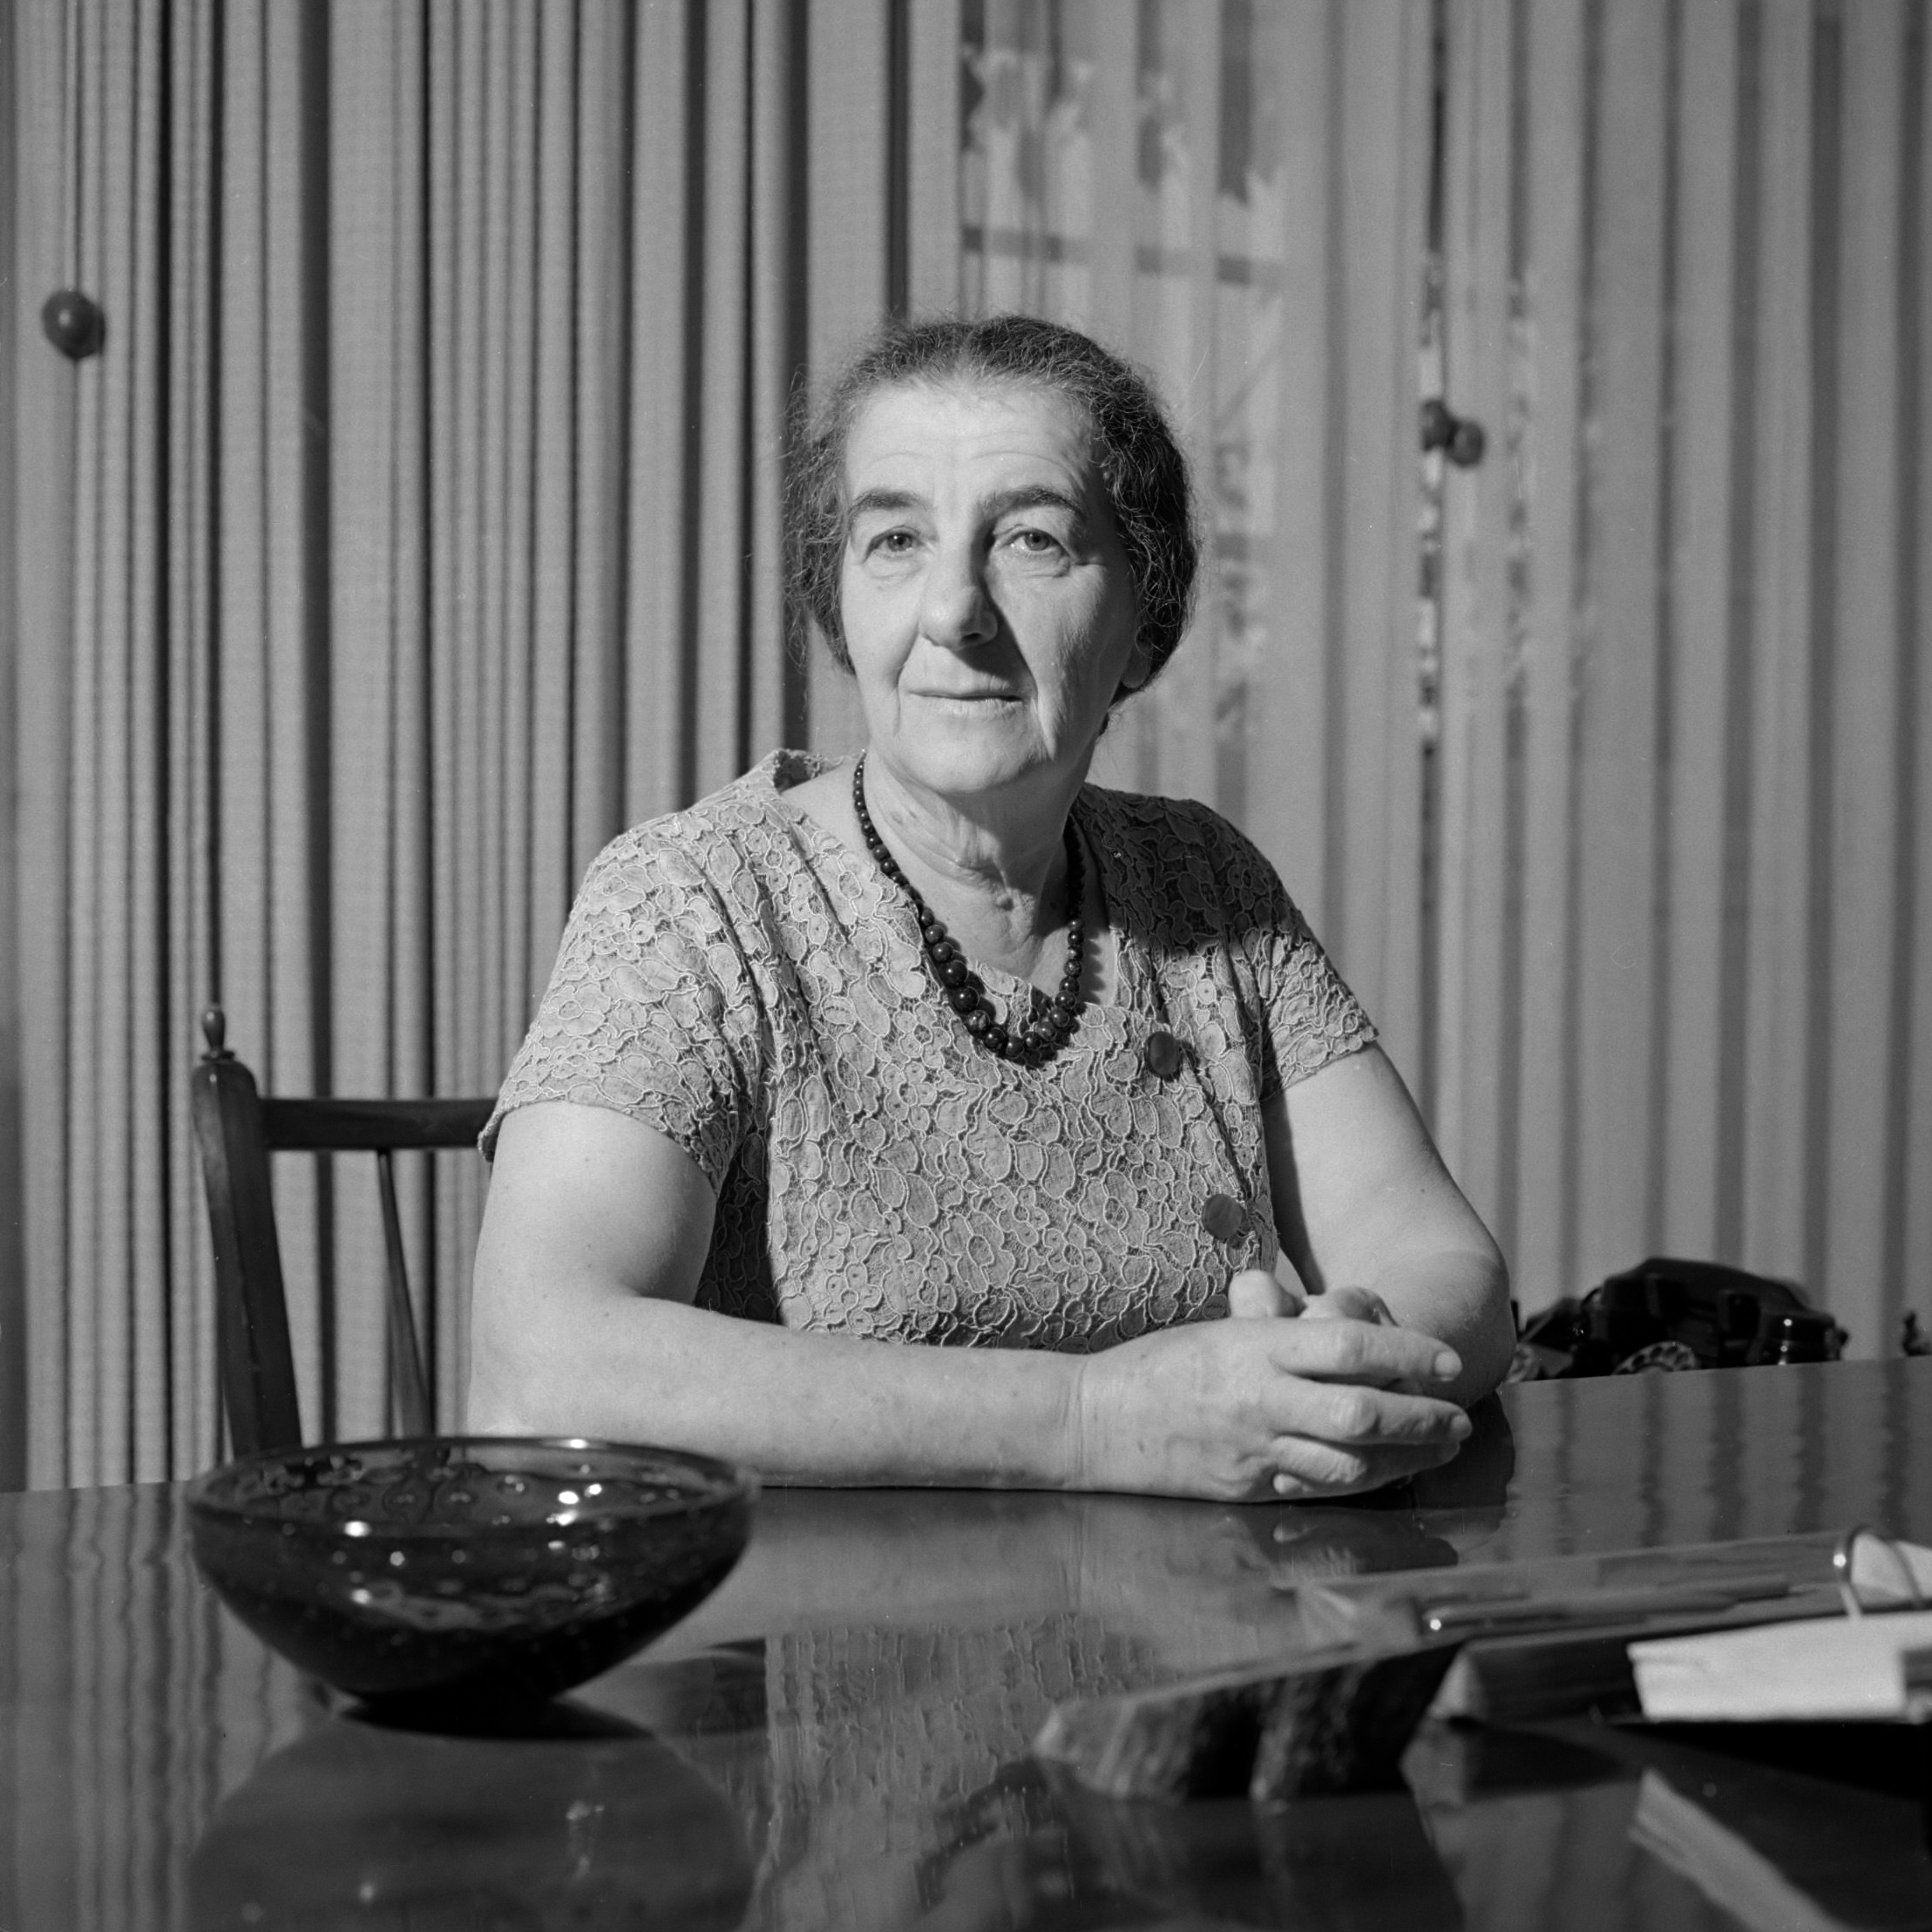 Former Israel PM Golda Meir. (Source: Wikimedia Commons)